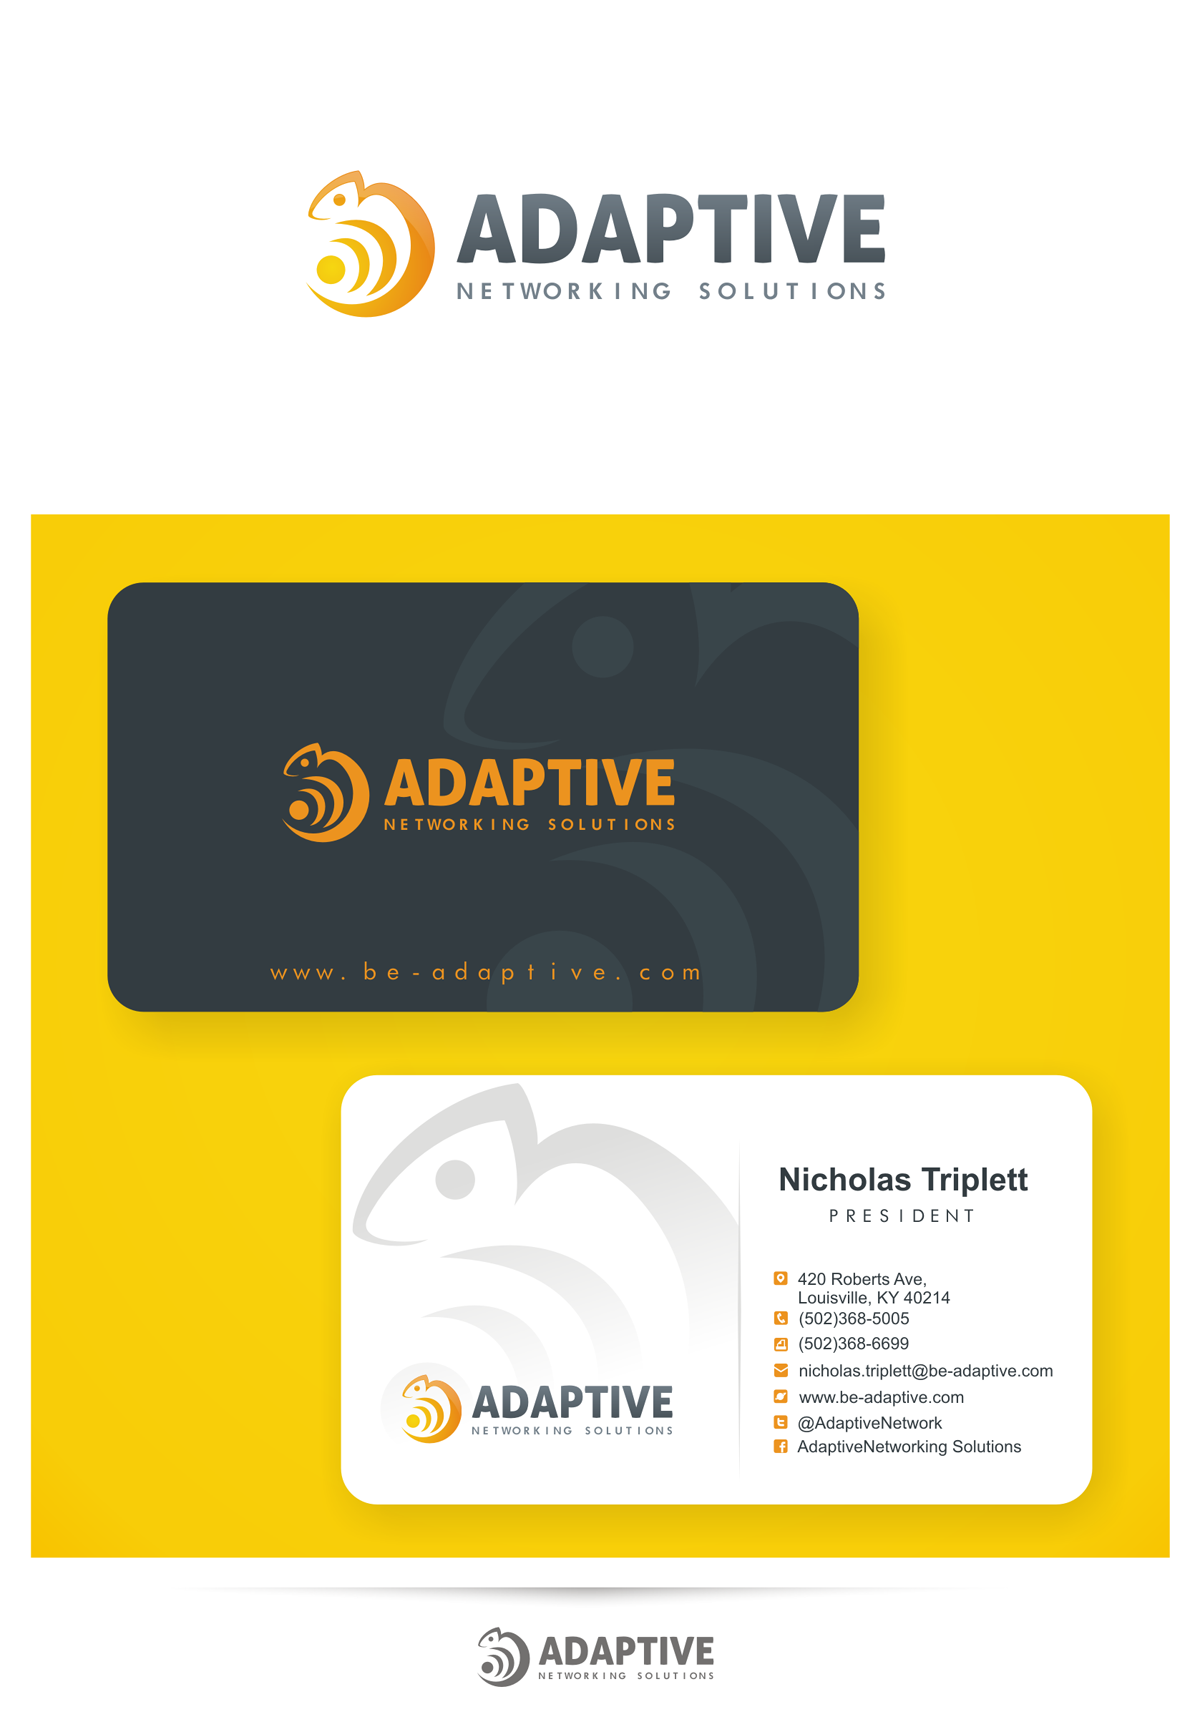 Adaptive Networking Solutions needs a new logo/business card (Guaranteed Prize)